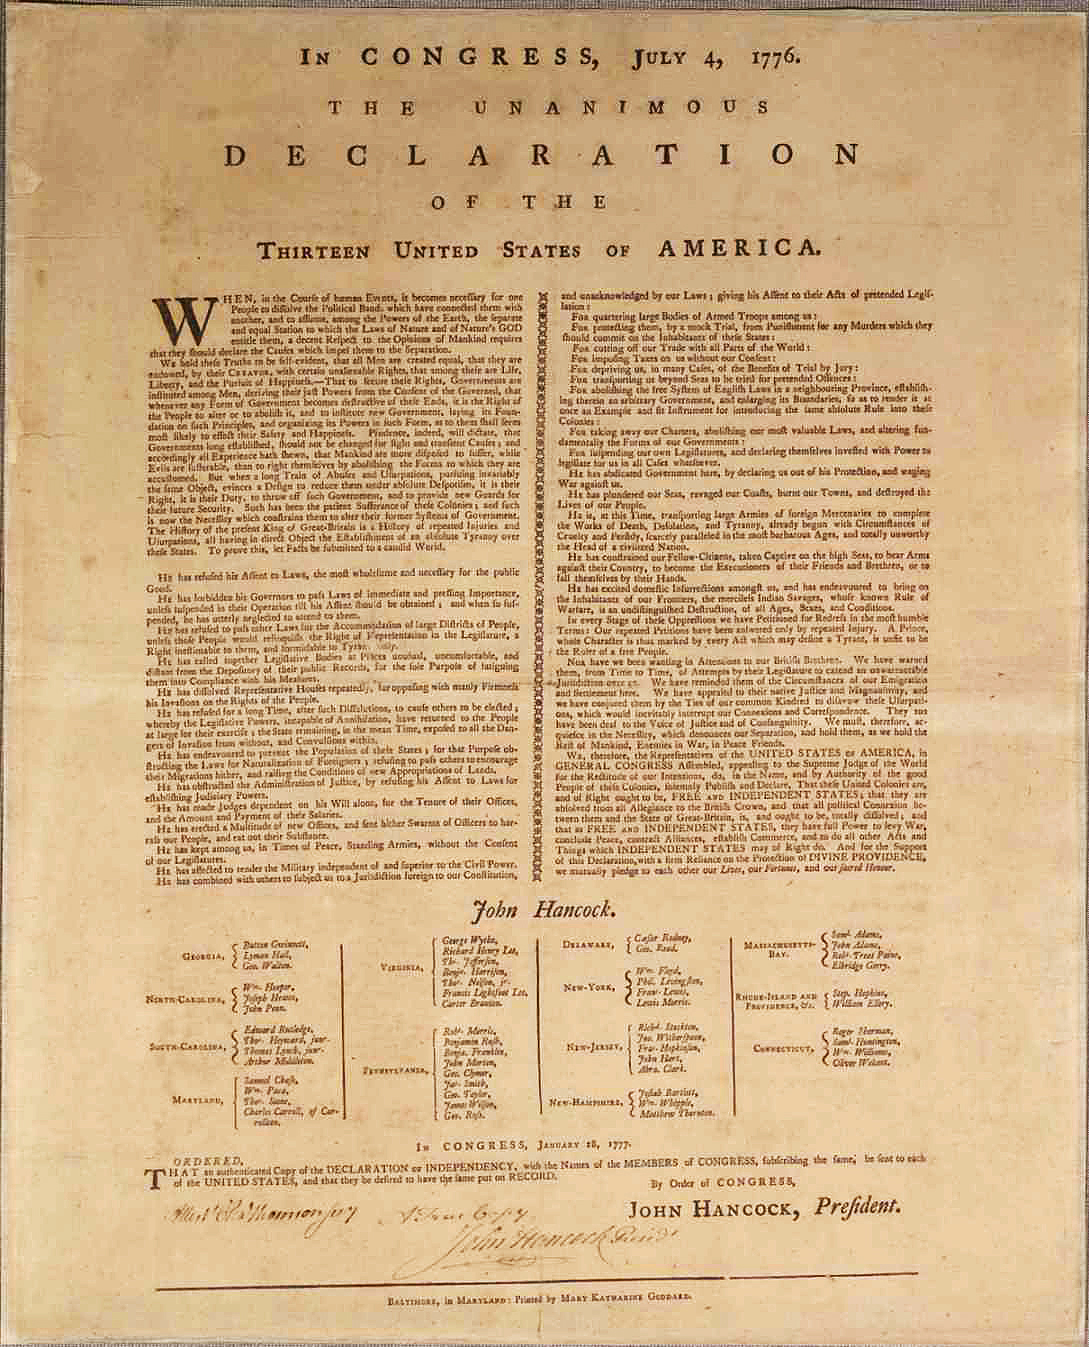 http://intimapress.com/wp-content/uploads/mary-catherine-goddard-declaration-of-independence-web1.jpg